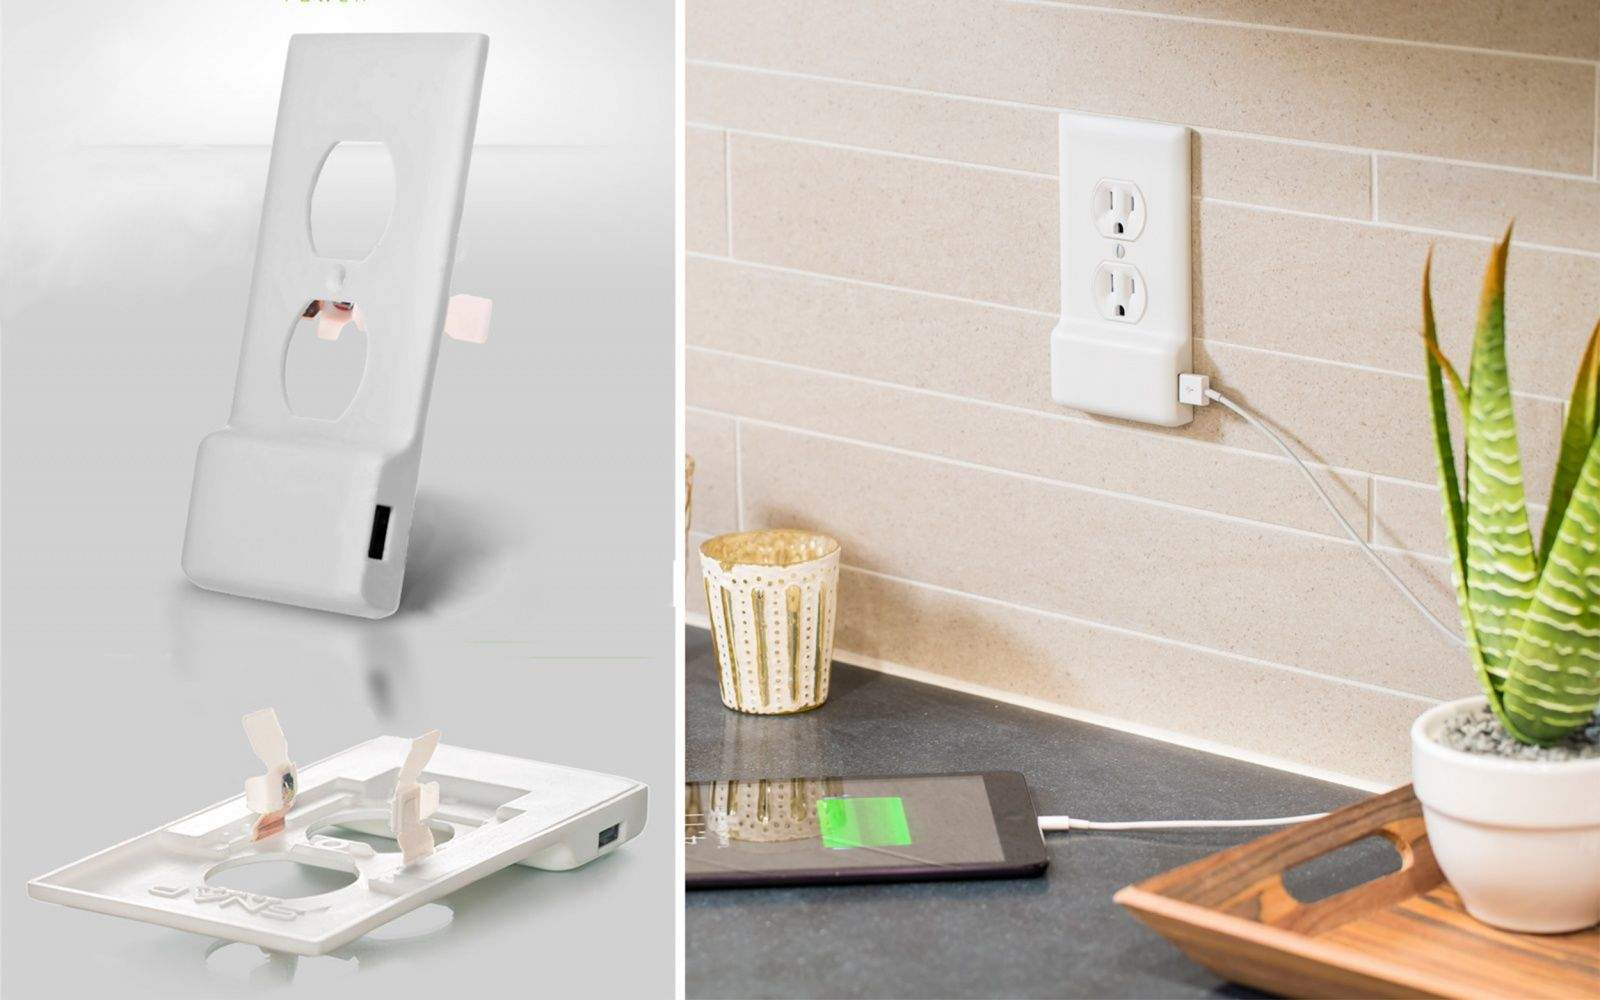 The SnapPower USB charger has raised more than $600,000 on Kickstarter. Photo: SnapPower